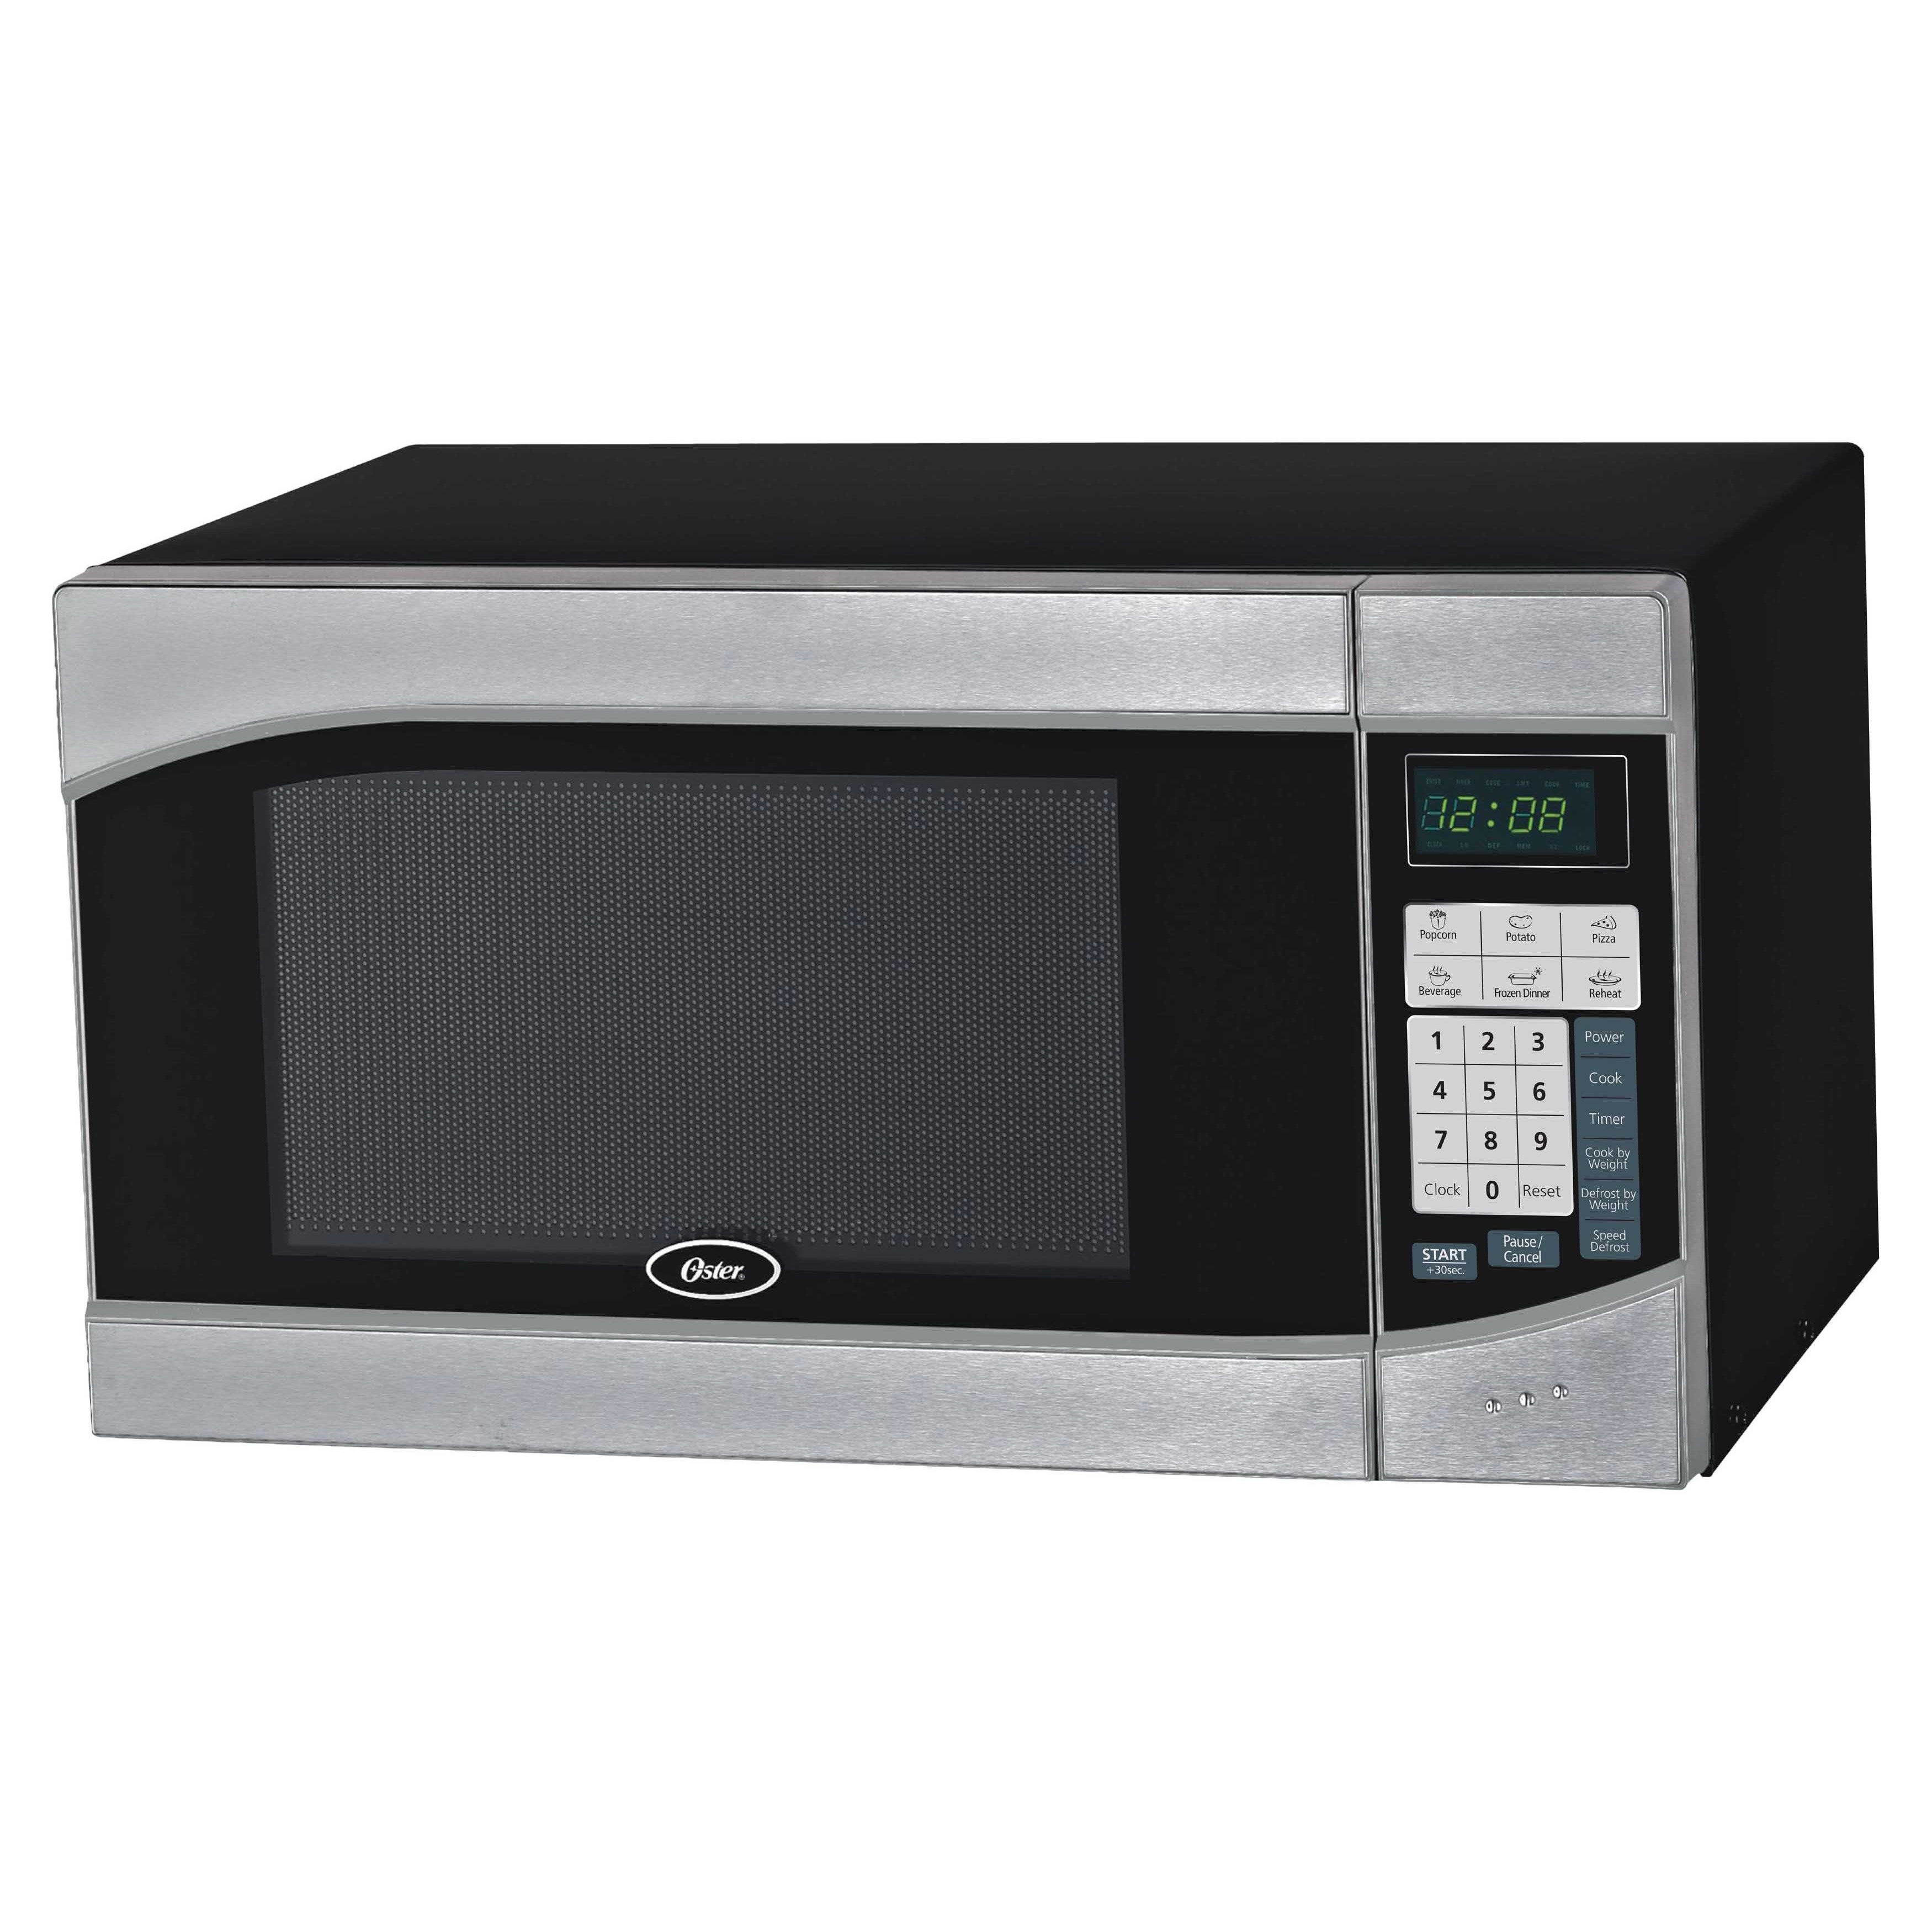 Oster OGH6901 0.9 Cubic Foot Digital Microwave Oven (Micr...